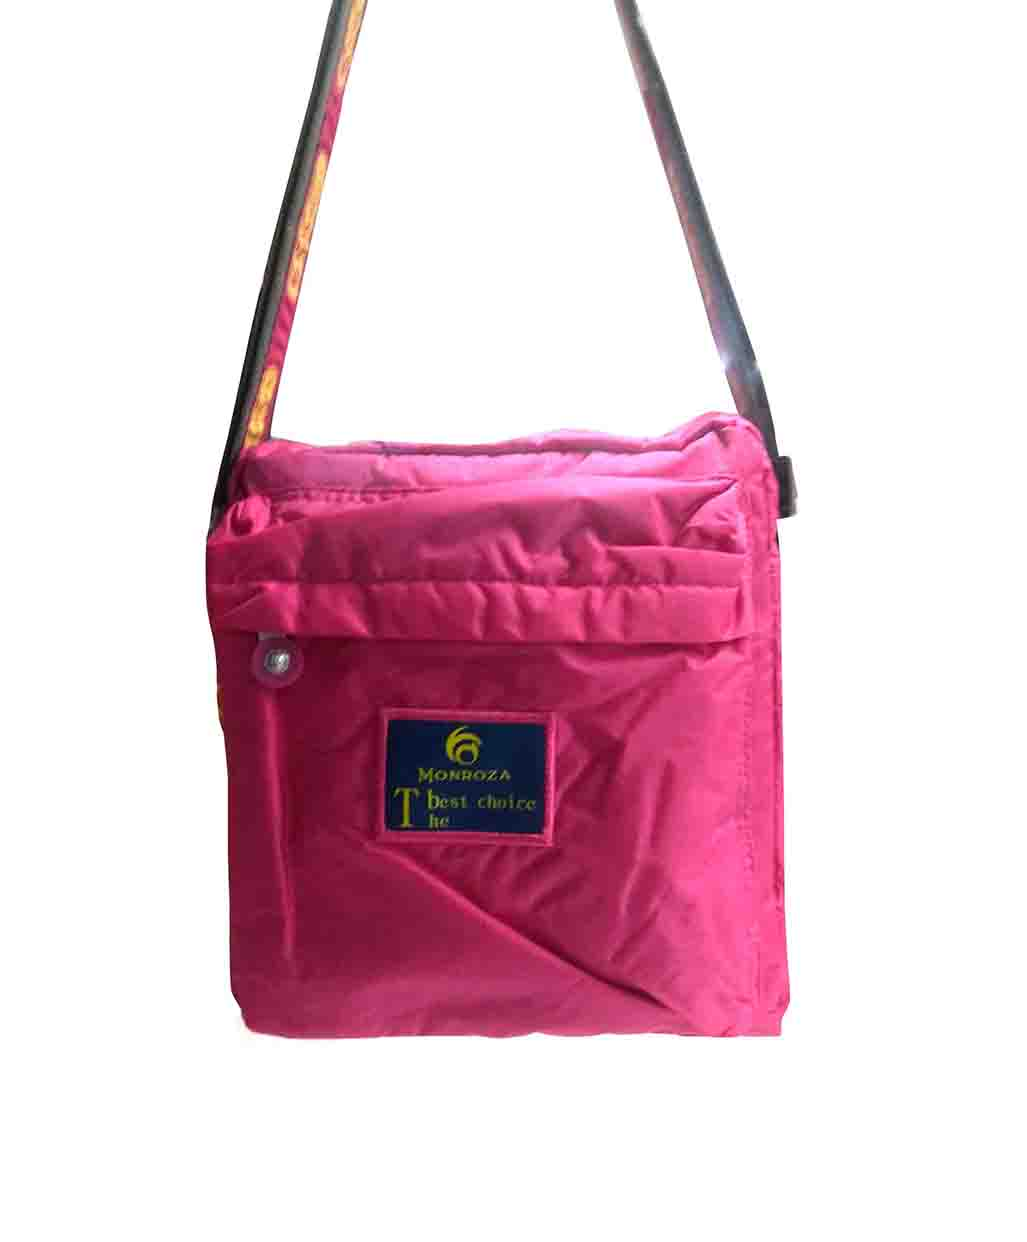 WHB SARA 12-PINK/YELLOW-WOMEN HANDBAG